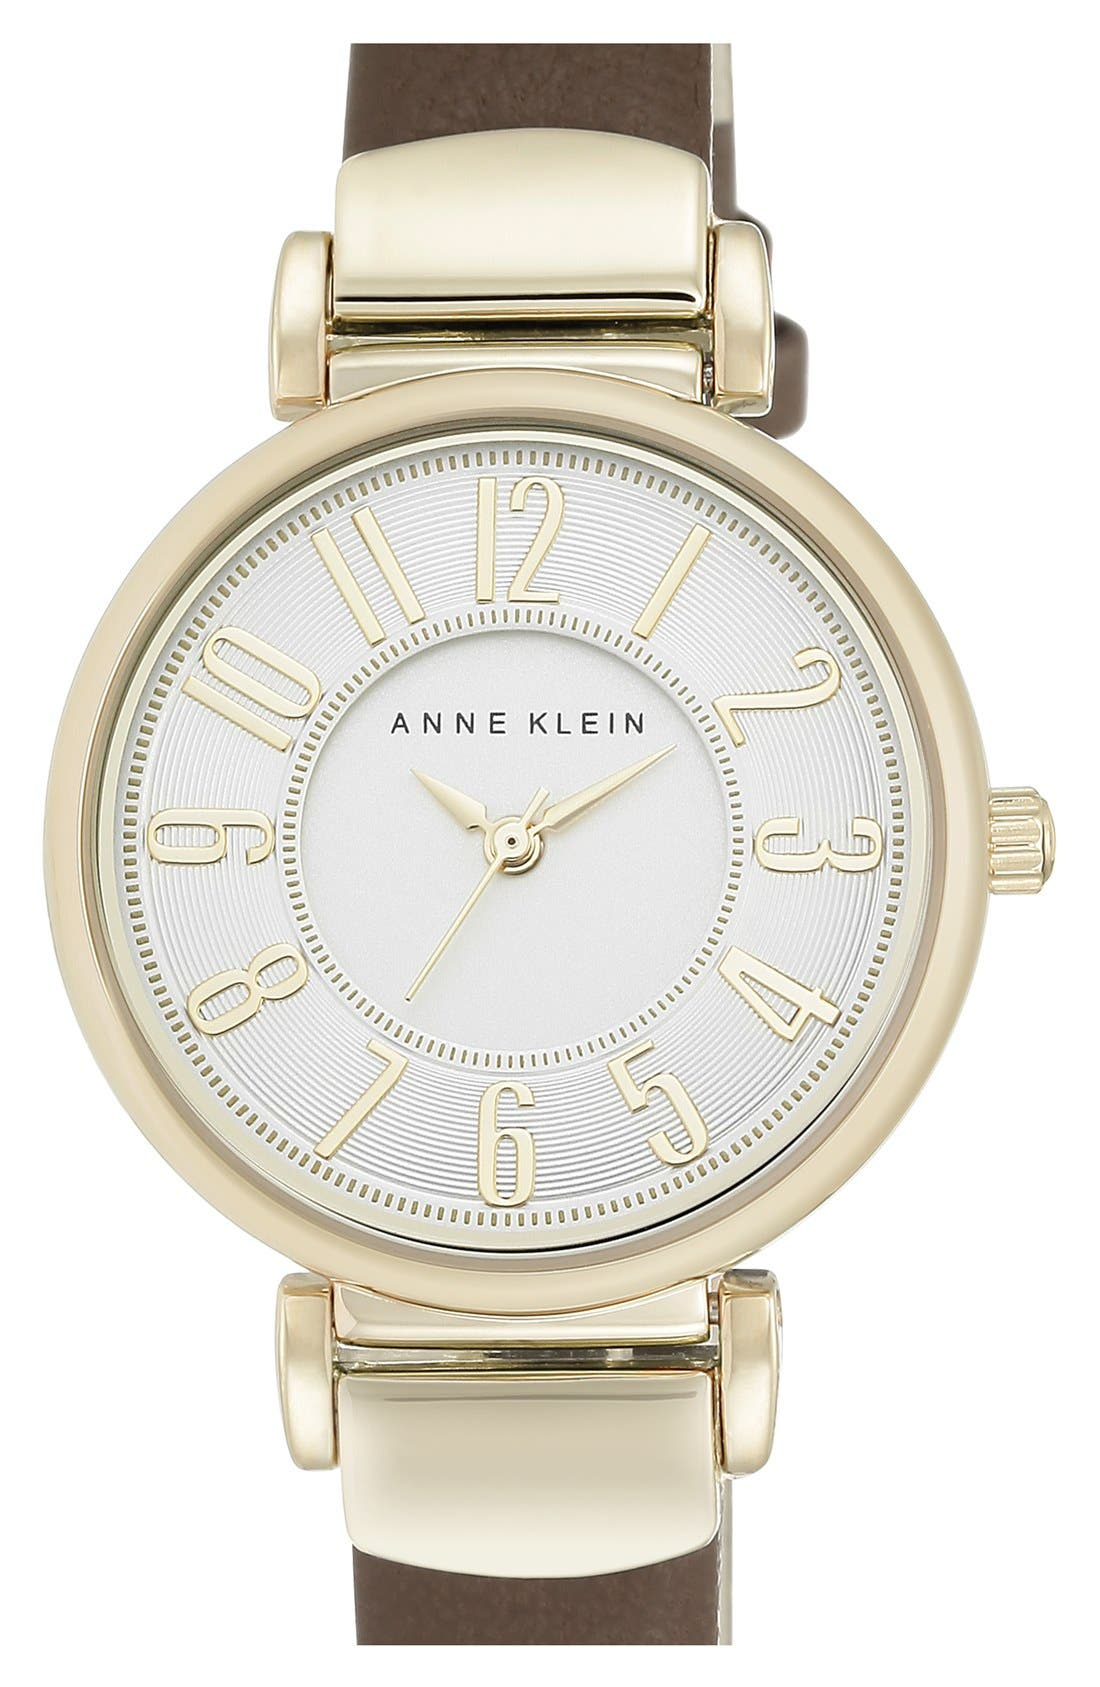 ANNE KLEIN Leather Strap Watch, 30mm